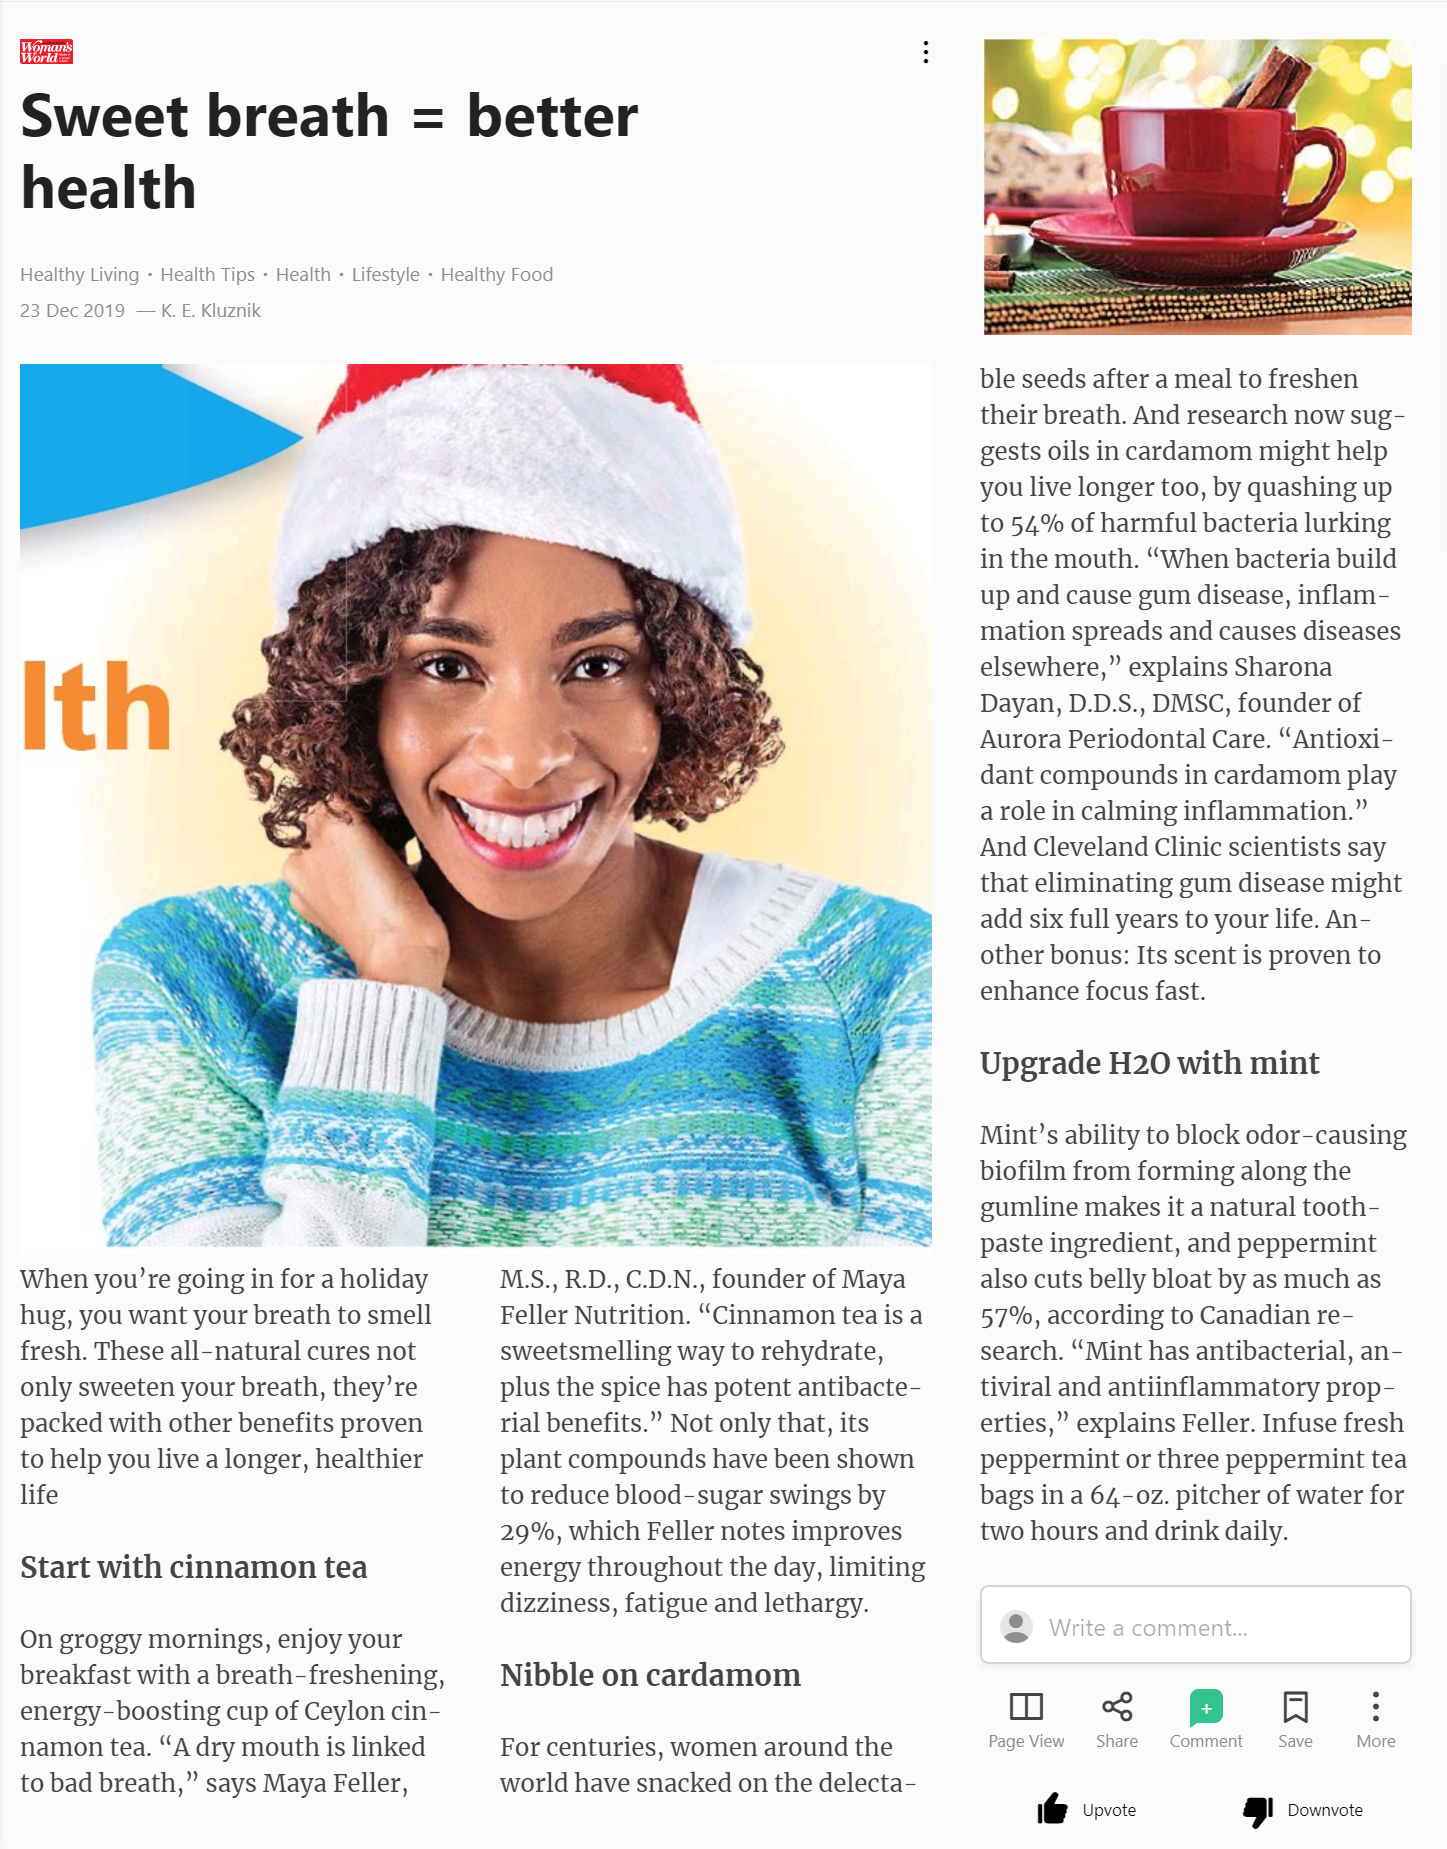 Cures For Bad Breath That Can Help You Live Longer, Healthier Lives. Dr. Sharona Dayan's Surprising Tip In Woman's World Magazine